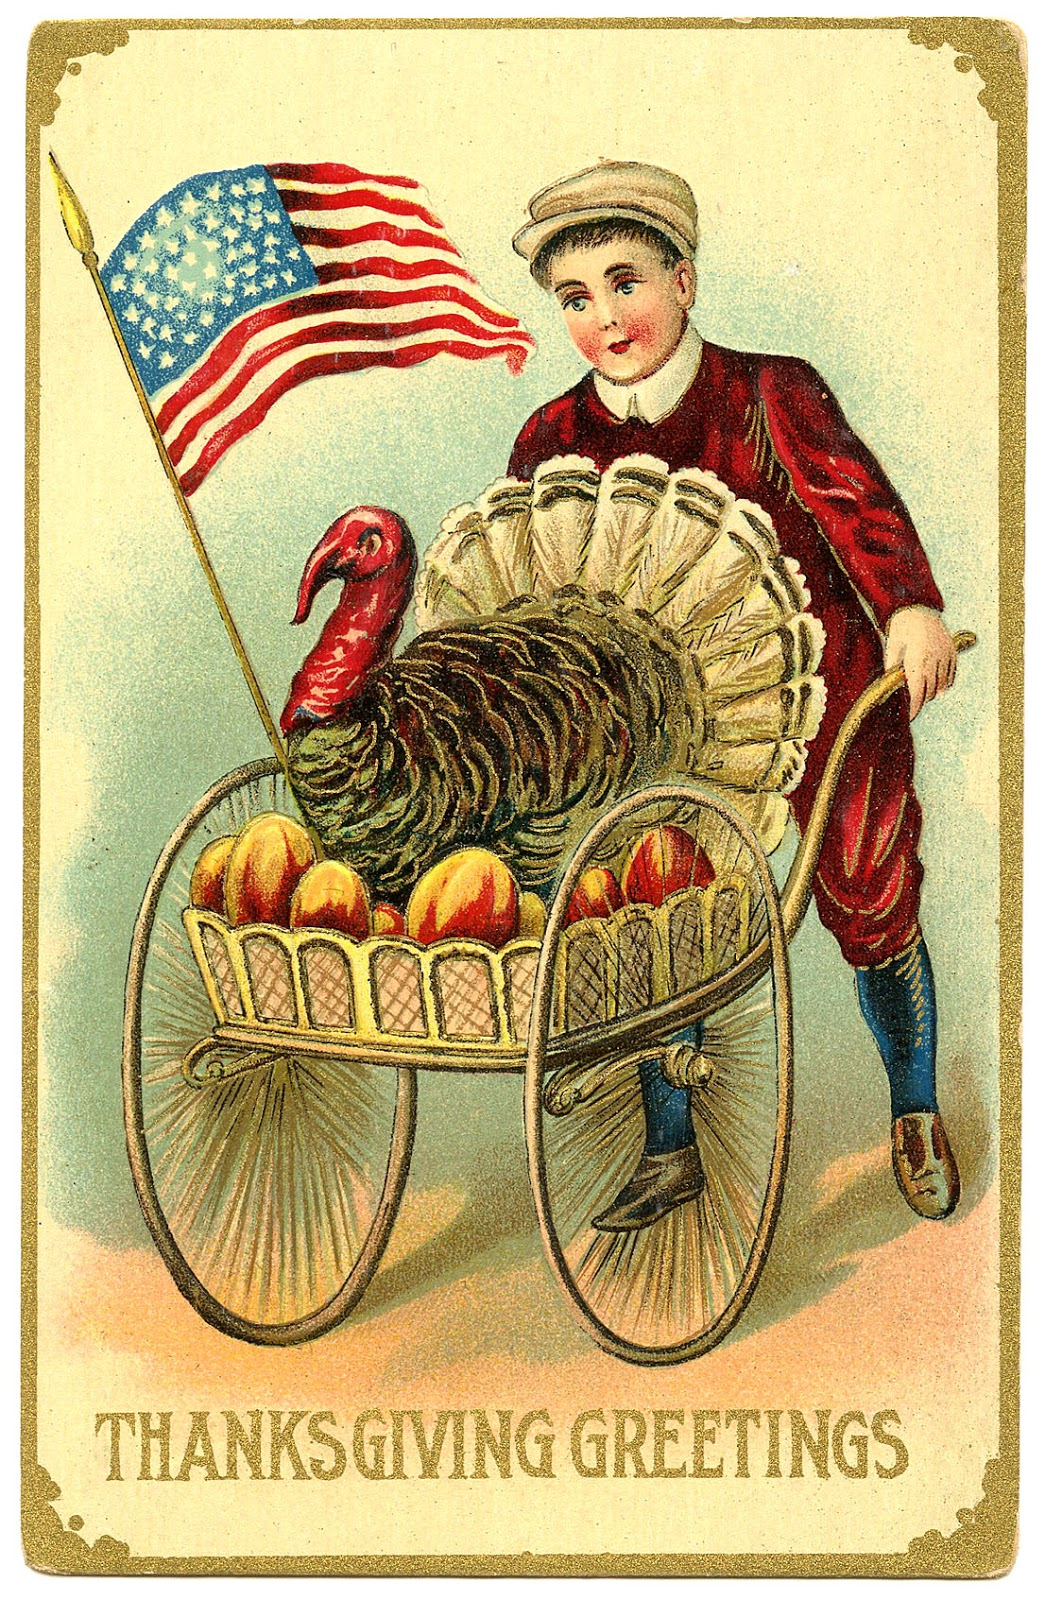 Cute Cartoon Fruit Wallpaper Vintage Thanksgiving Image Boy With Patriotic Turkey